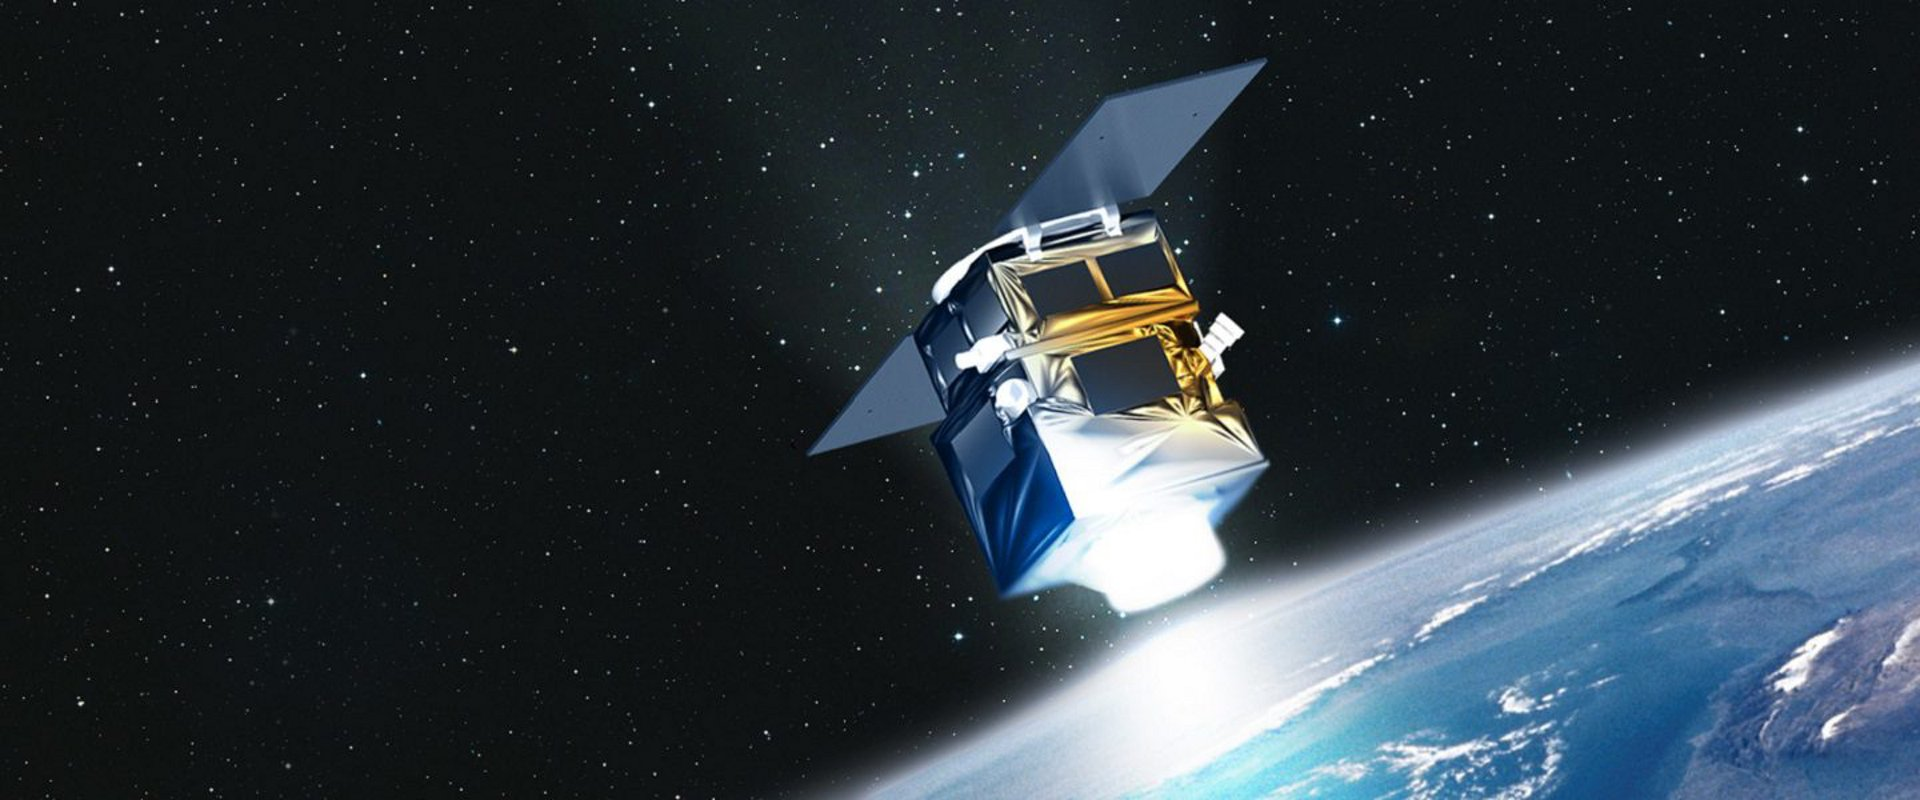 A representation of the very-high-resolution PerúSAT-1 Earth observation satellite, which was produced by Airbus.